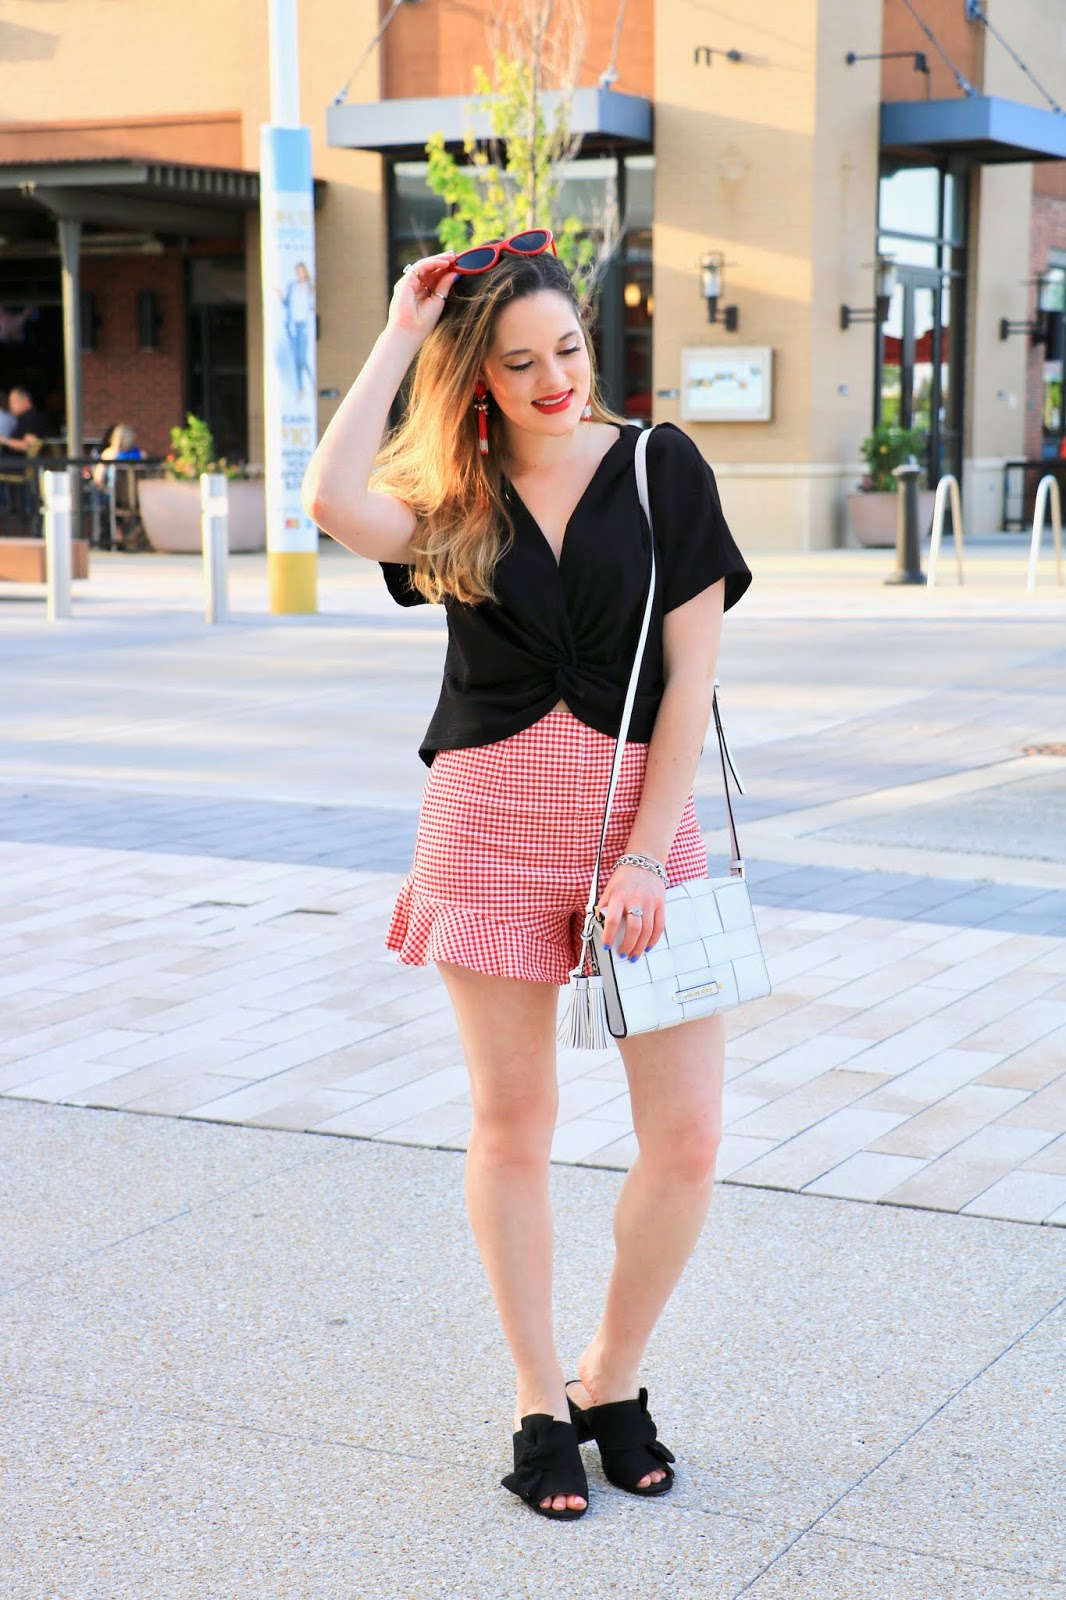 Nyc fashion blogger Kathleen Harper showing how to wear a twist crop top